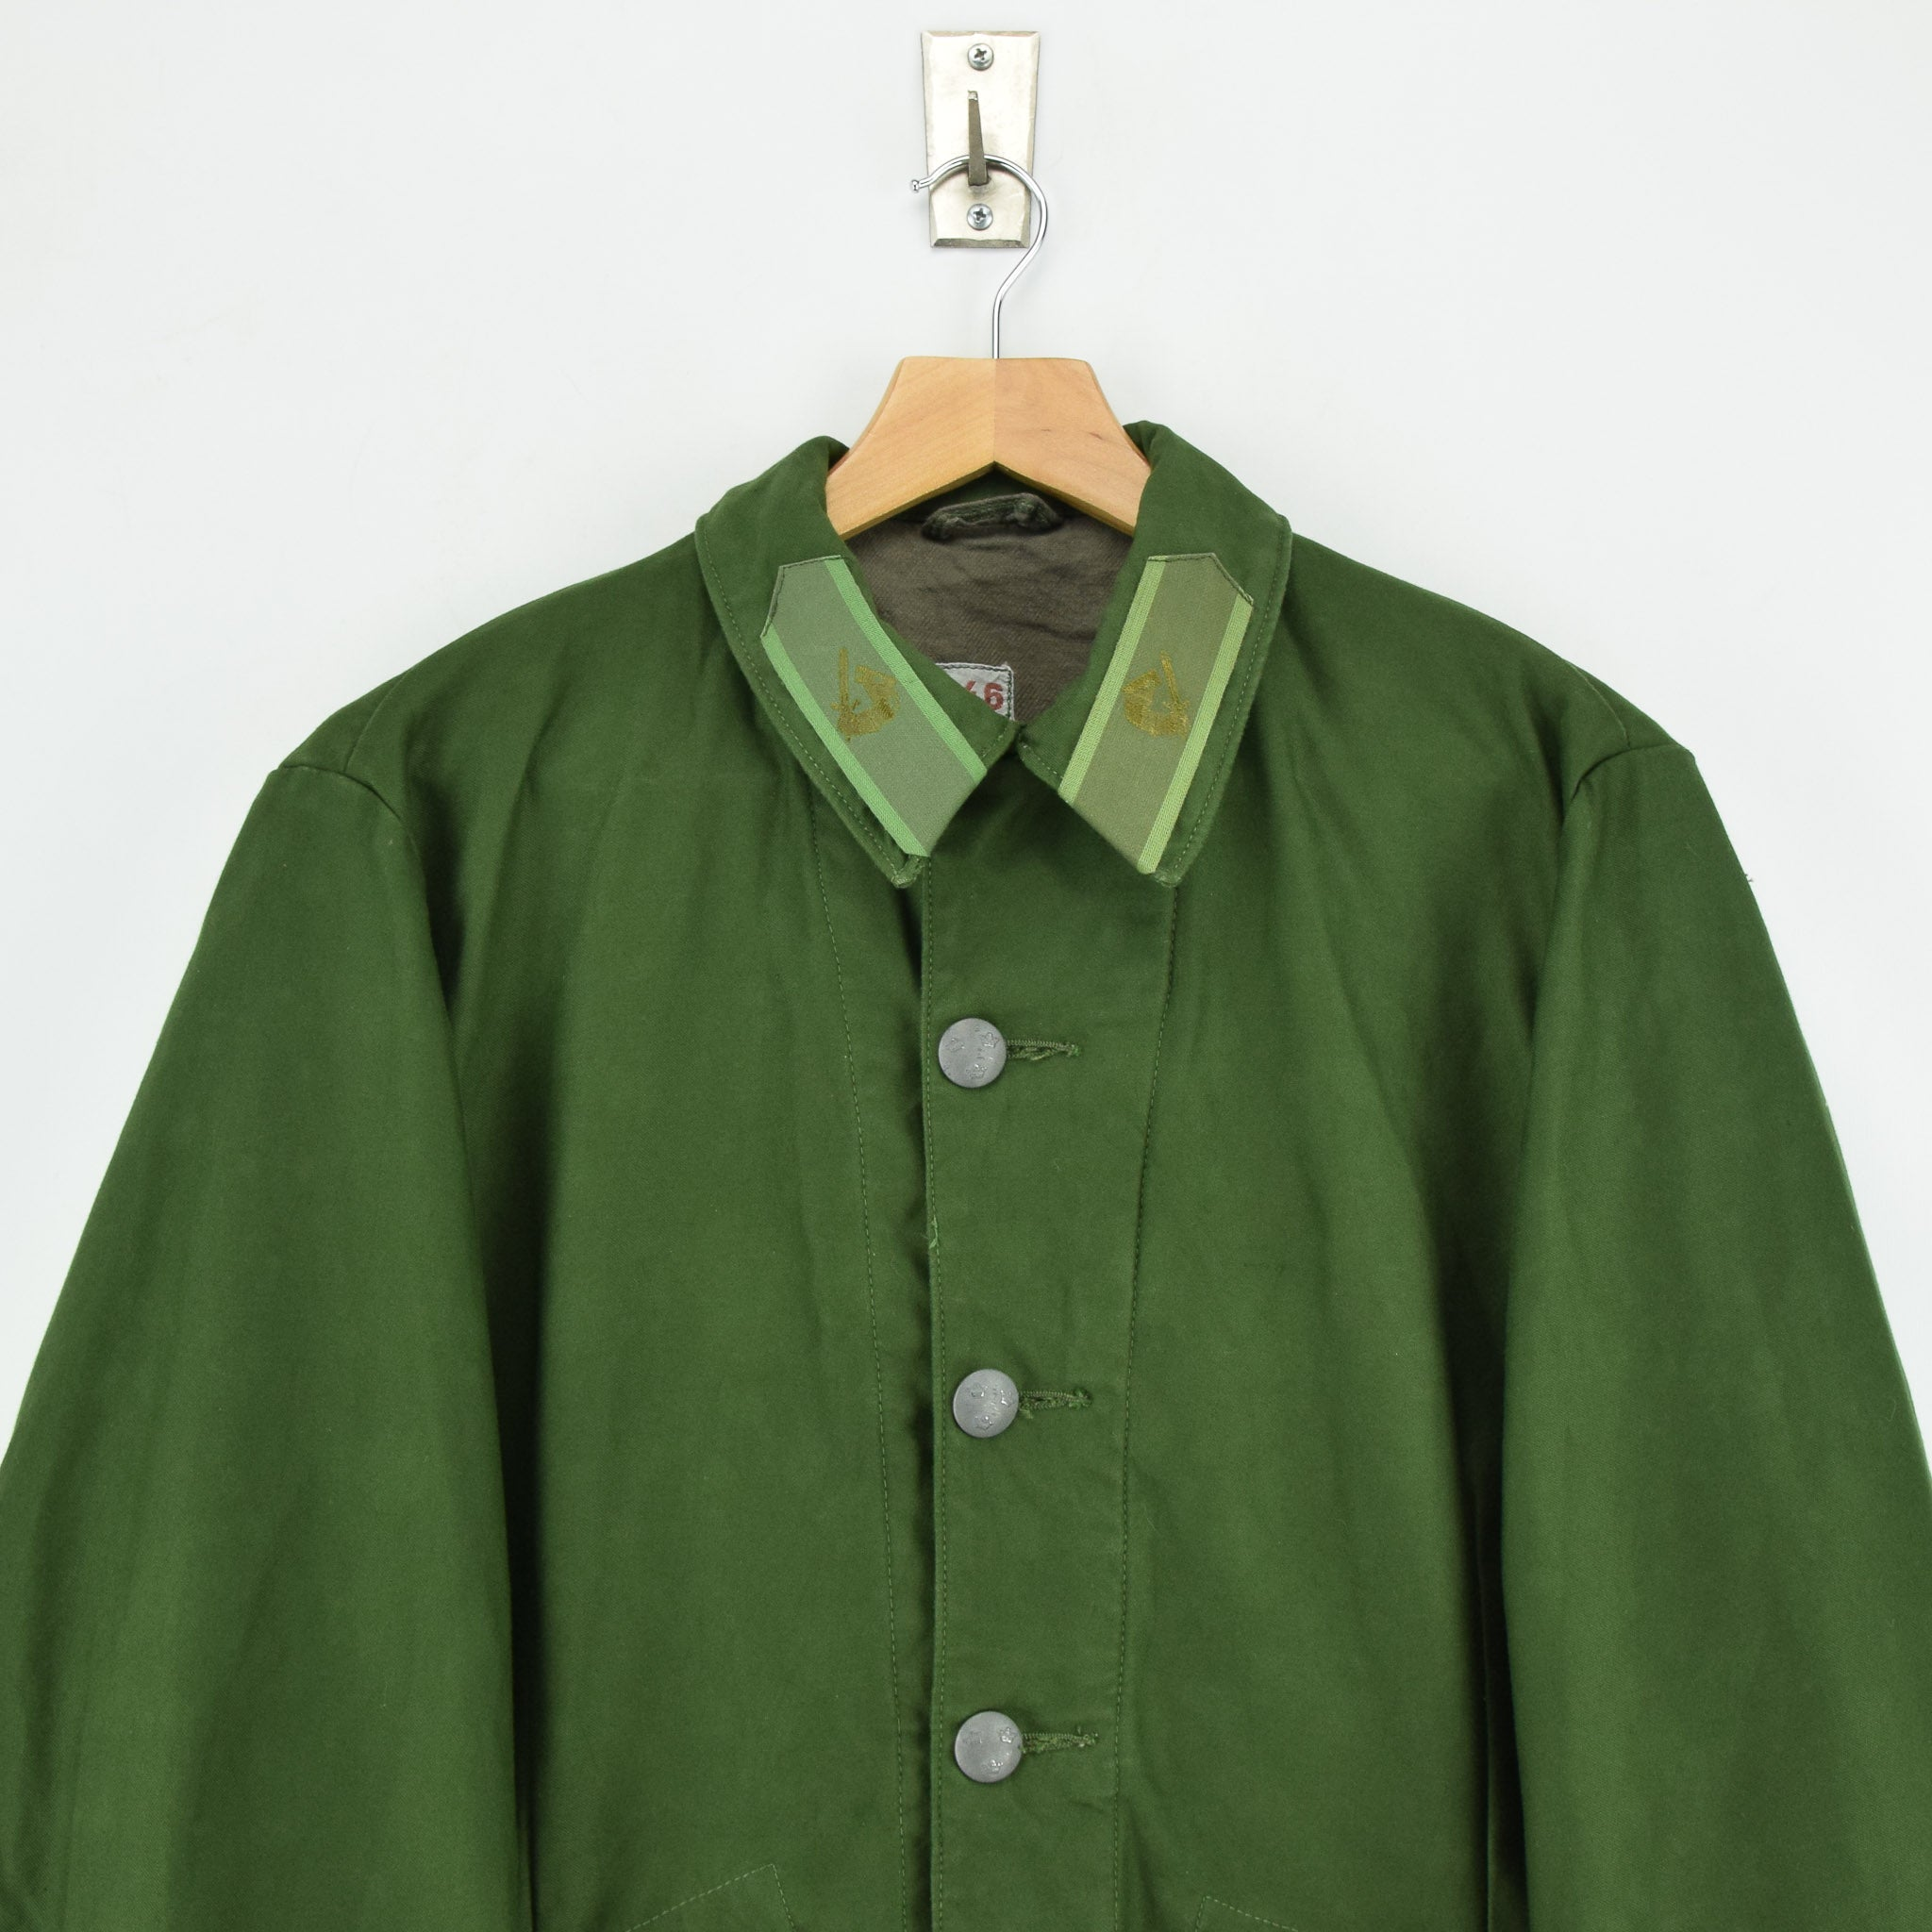 Vintage 60s Swedish M59 Field Military Olive Green Worker Style Jacket S chest